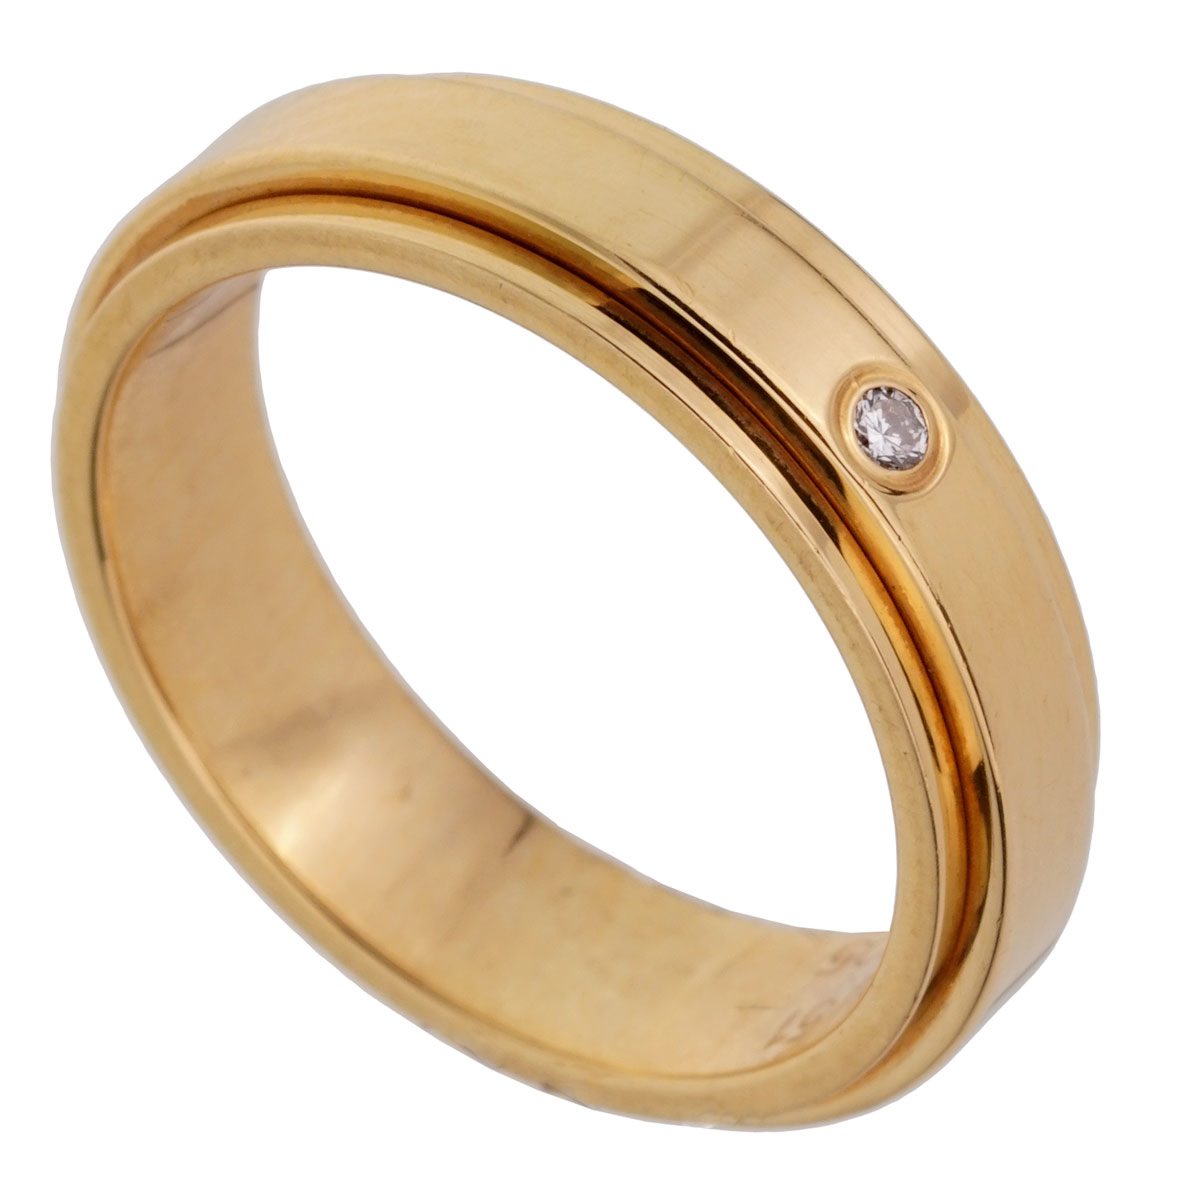 Piaget Possession Yellow Gold Diamond Spinning Ring Sz 5 1/2